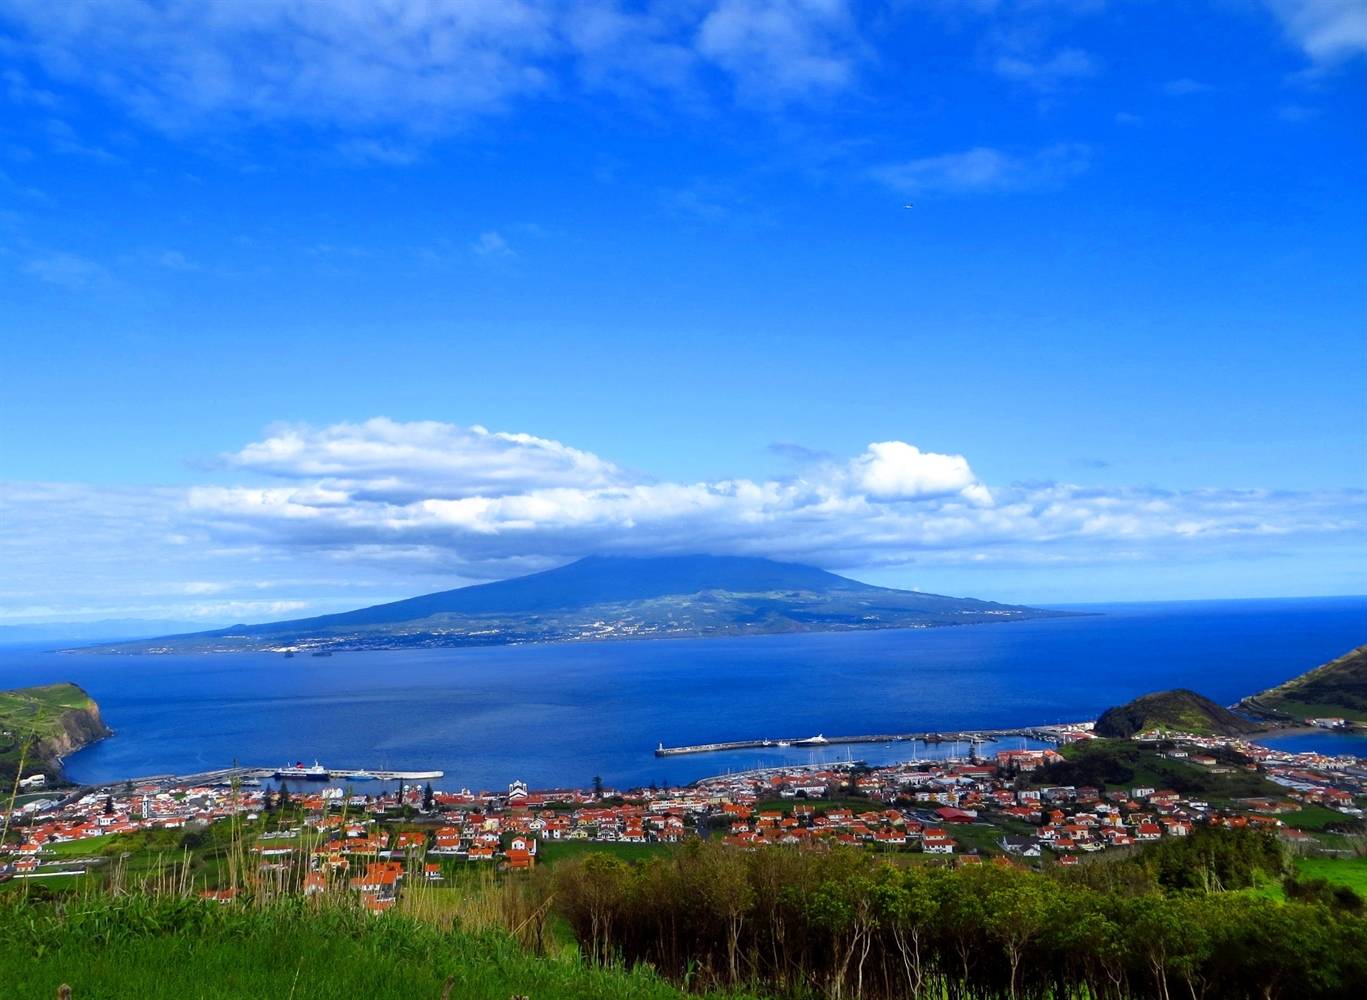 View over Horta to Pico Island